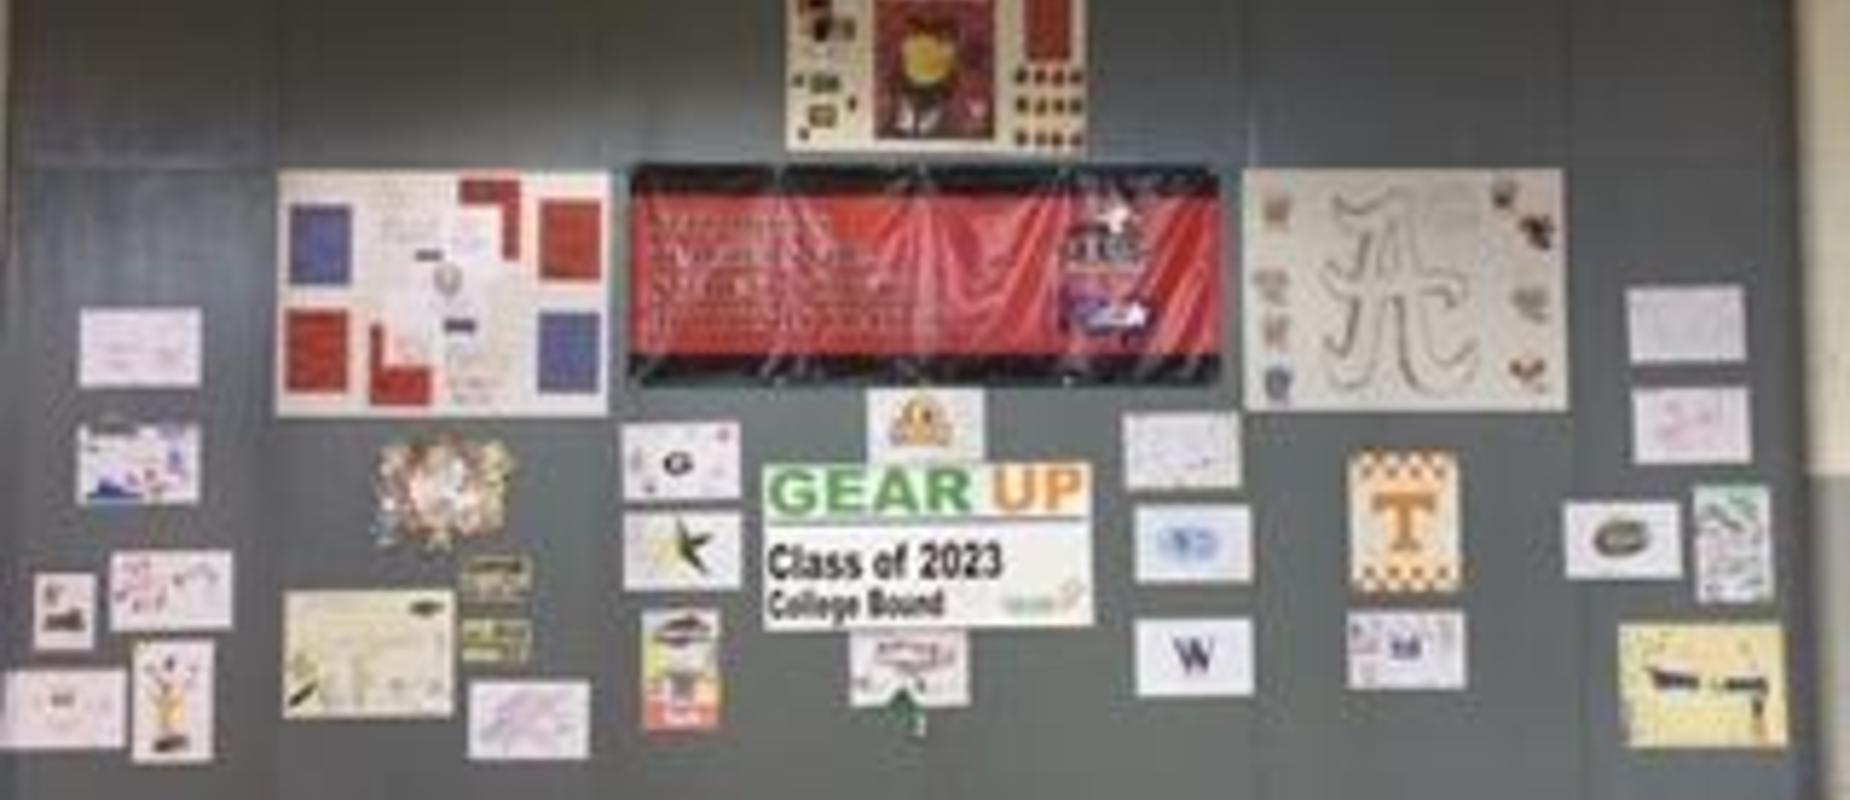 Gear up Bulletin Board